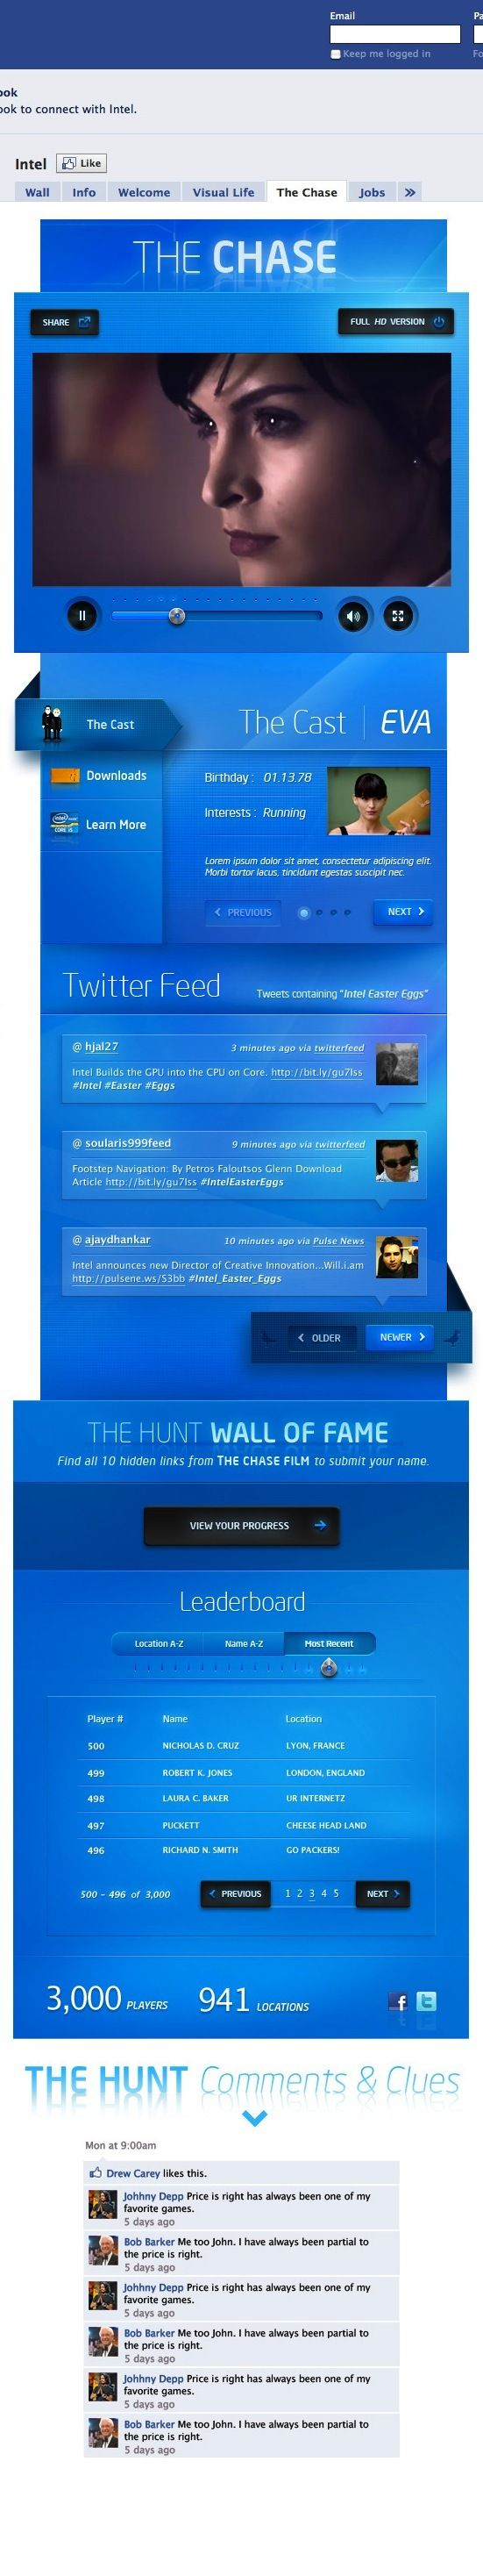 "Intel ""The Chase"" Facebook App by Ben Cline, via Behance"